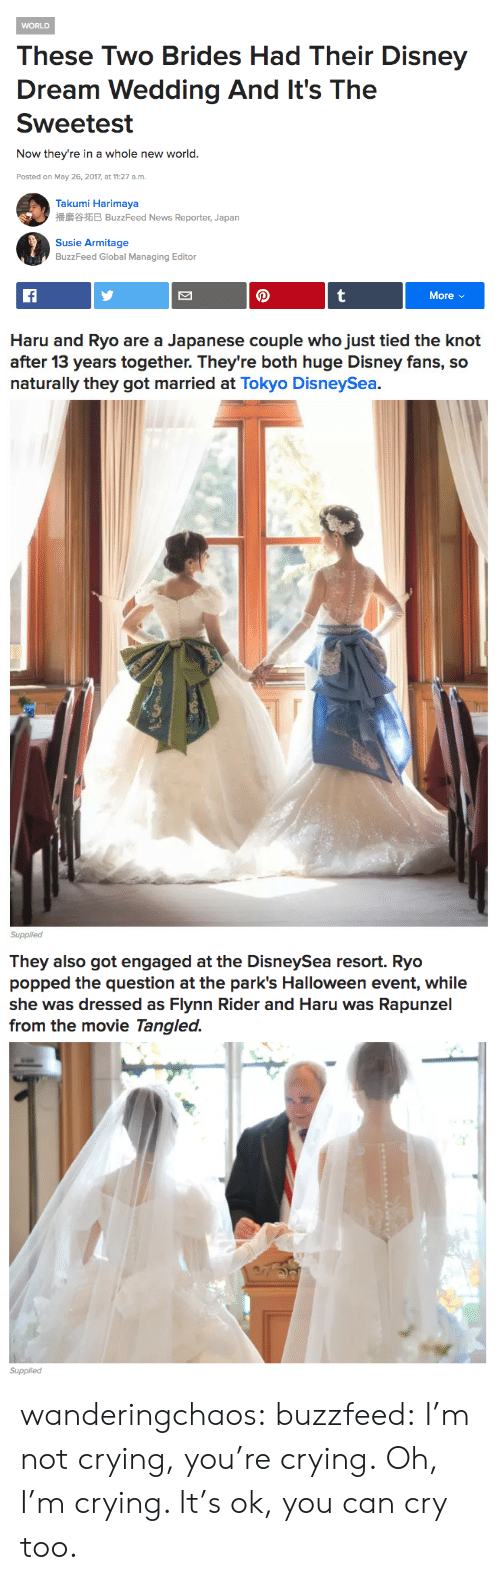 Crying, Disney, and Halloween: WORLD  These Two Brides Had Their Disney  Dream Wedding And It's The  Sweetest  Now they're in a whole new world.  Posted on May 26, 2017, at 11:27 a.m  Takumi Harimaya  播磨谷拓巳BuzzFeed News Reporter, Japan  Susie Armitage  BuzzFeed Global Managing Editor  More v/   Haru and Ryo are a Japanese couple who just tied the knot  after 13 years together. They're both huge Disney fans, so  naturally they got married at Tokyo DisneySea.  Supplied   They also got engaged at the DisneySea resort. Ryo  popped the question at the park's Halloween event, while  she was dressed as Flynn Rider and Haru was Rapunzel  from the movie Tangled.  Supplied wanderingchaos: buzzfeed:  I'm not crying, you're crying.  Oh, I'm crying. It's ok, you can cry too.